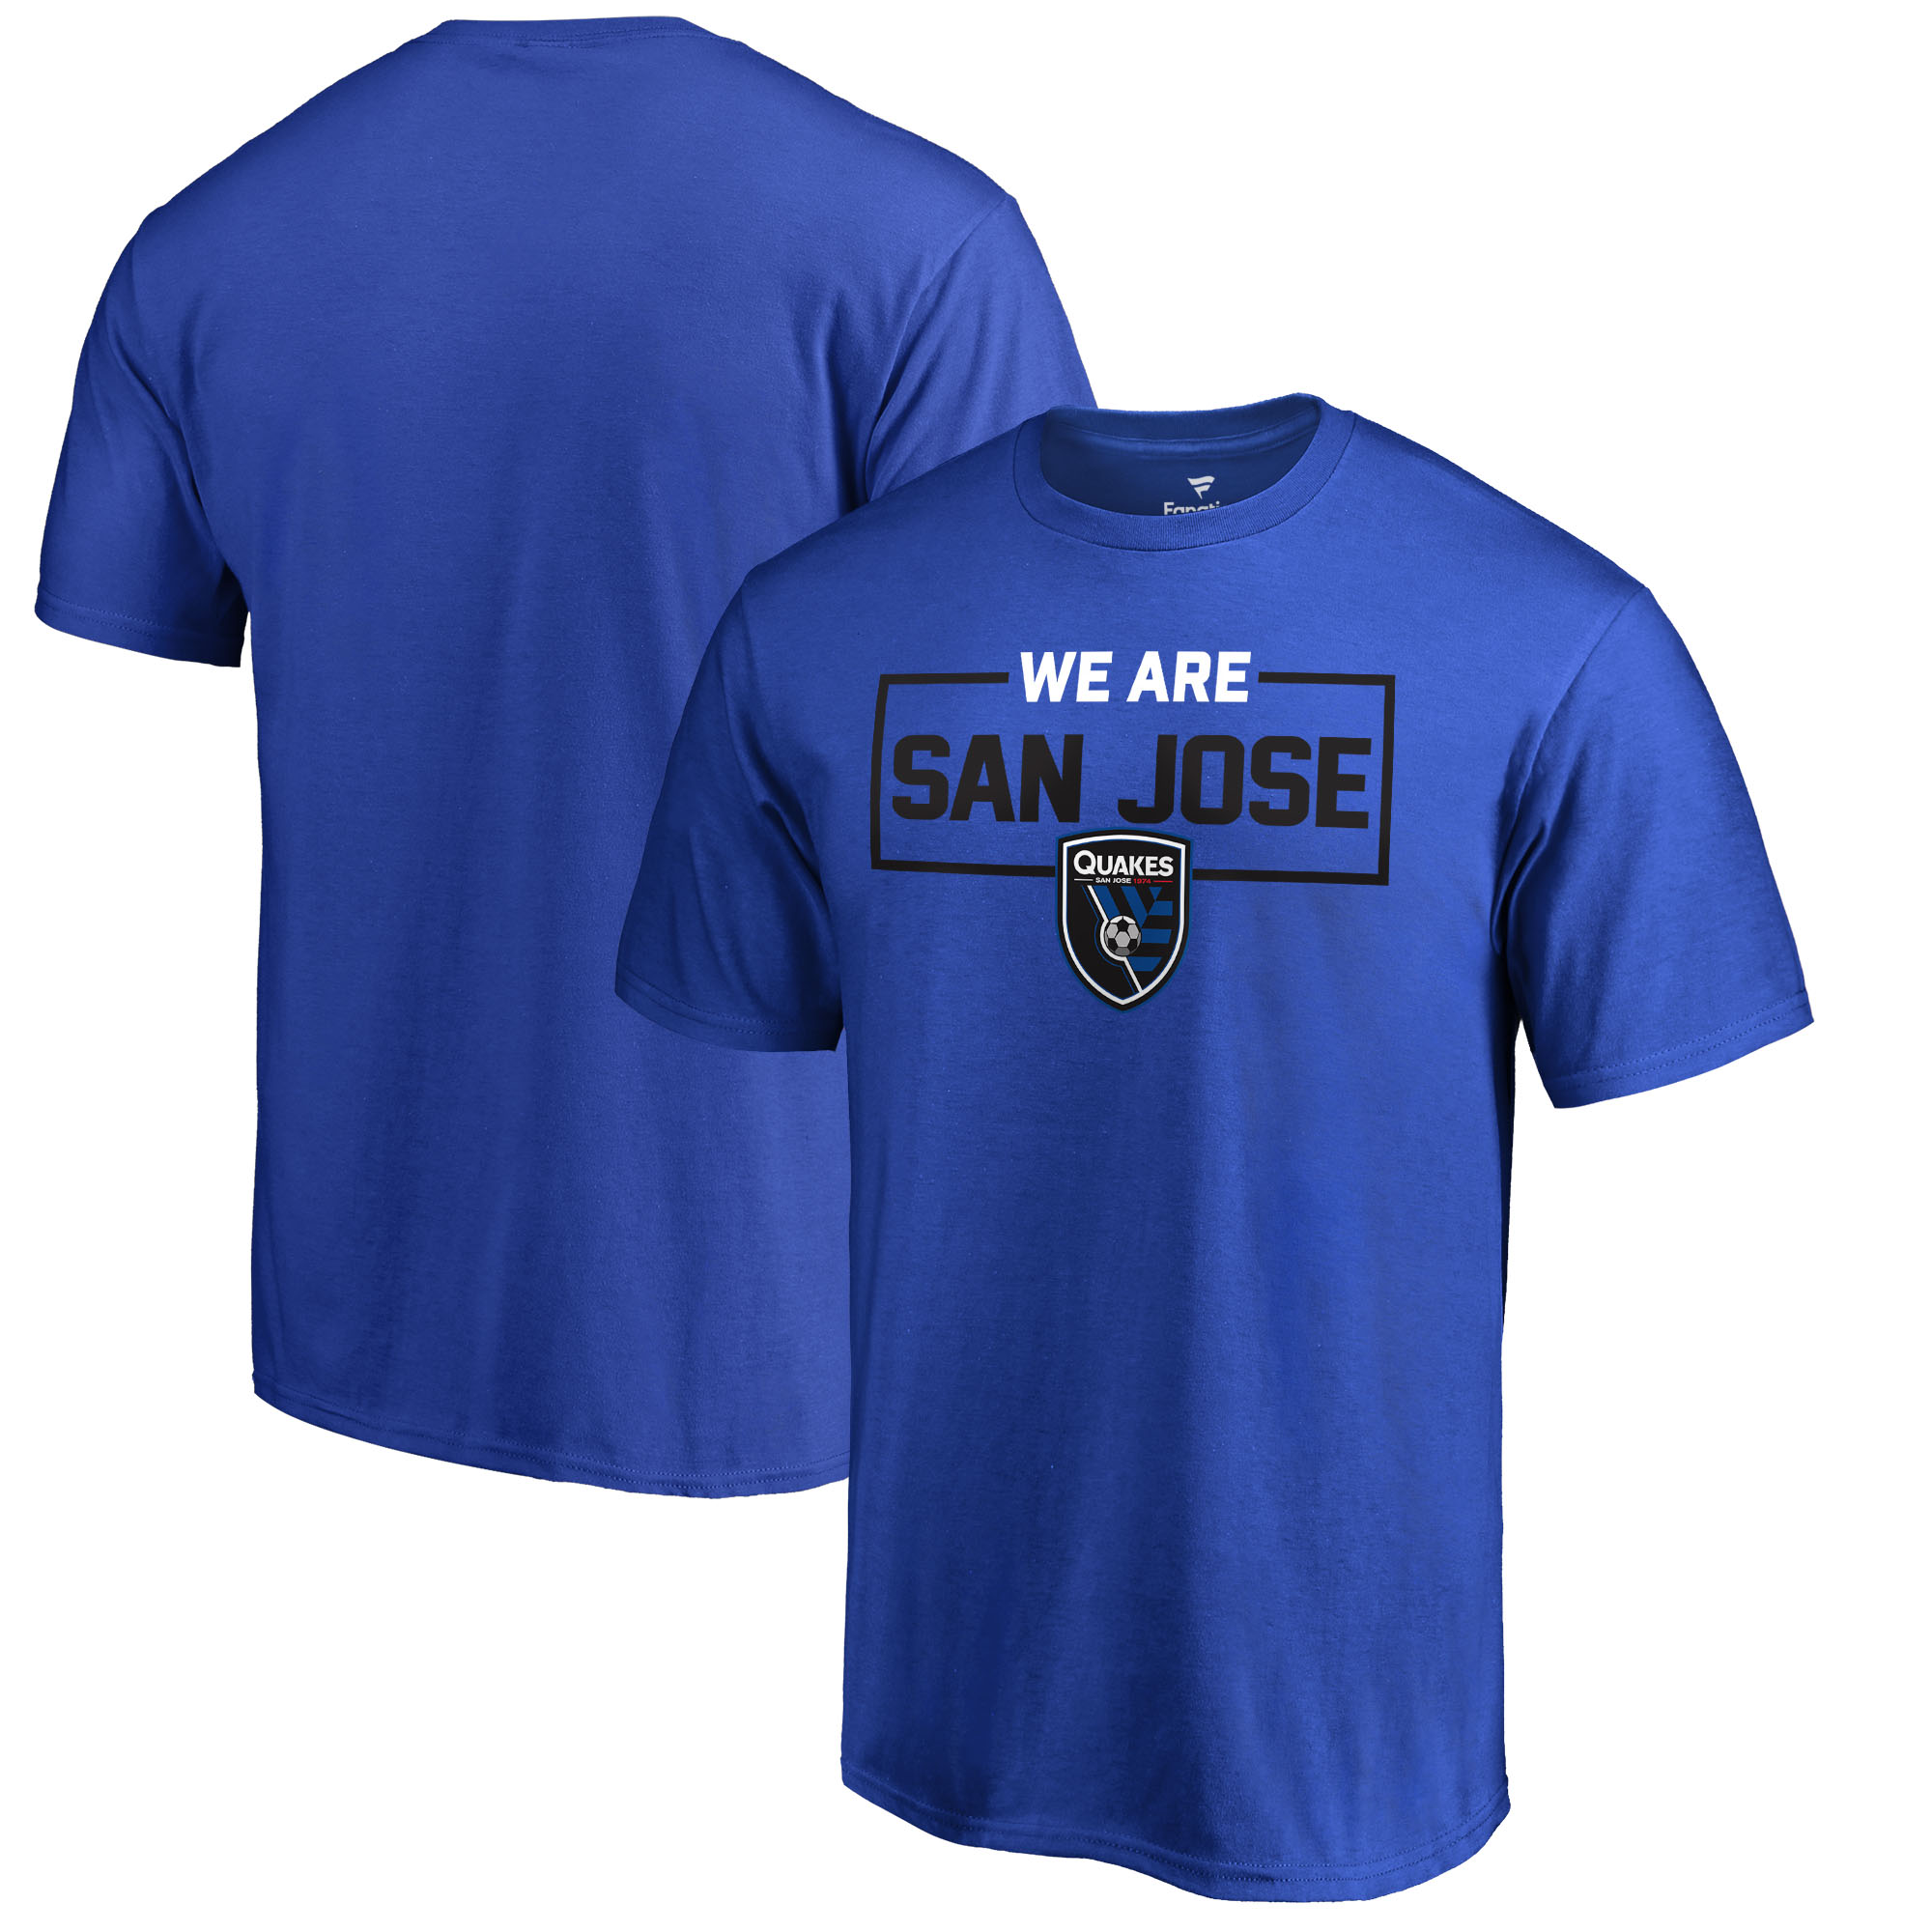 San Jose Earthquakes Fanatics Branded We Are T-Shirt - Blue